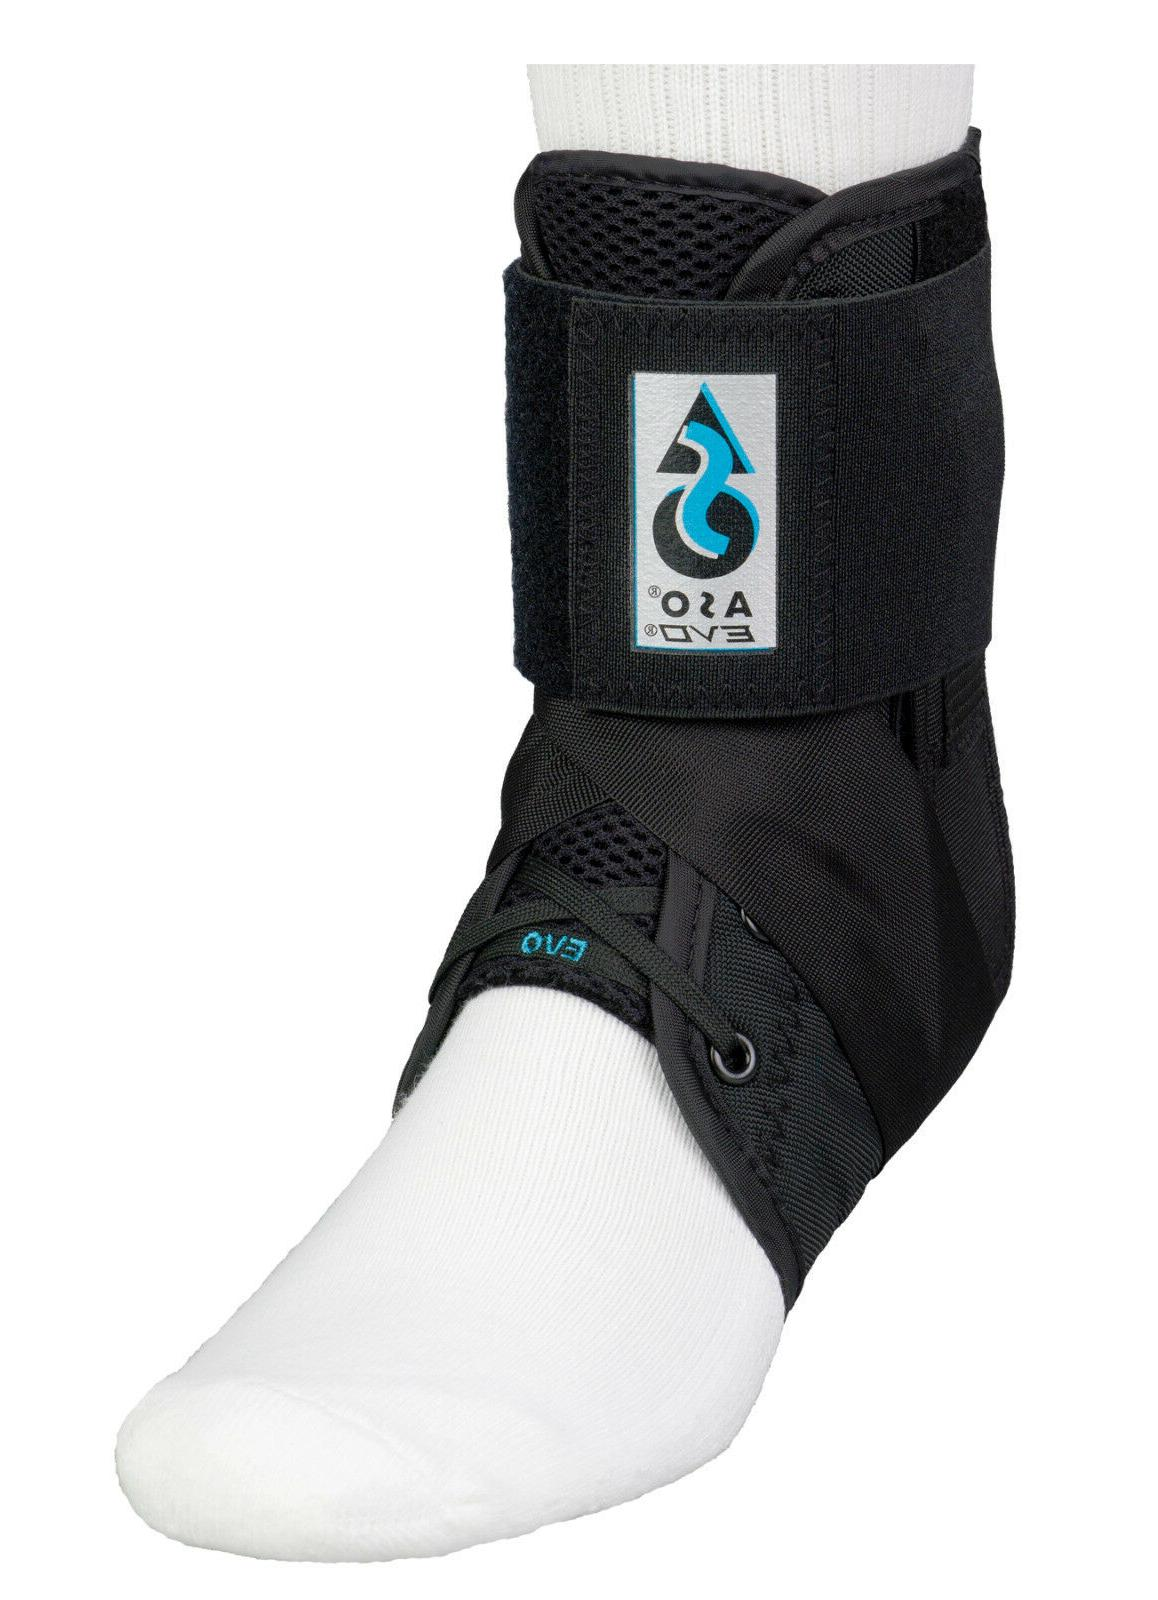 aso evo ankle brace stabilizer orthothis support